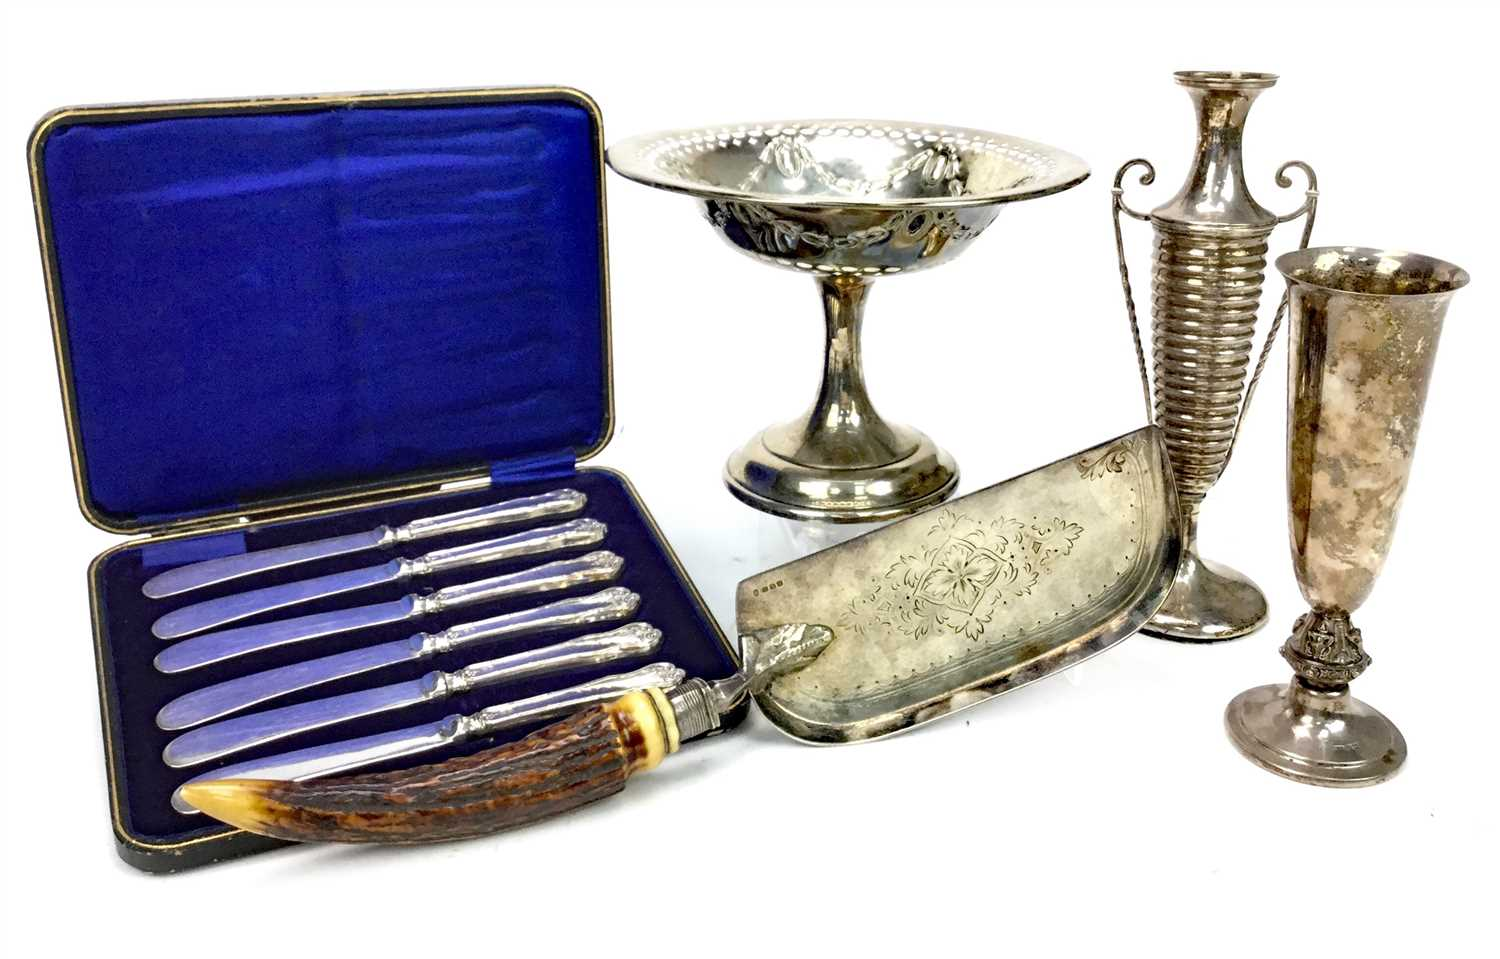 Lot 820 - A GEORGE V SILVER BONBON DISH AND OTHER SILVER TABLE WARE